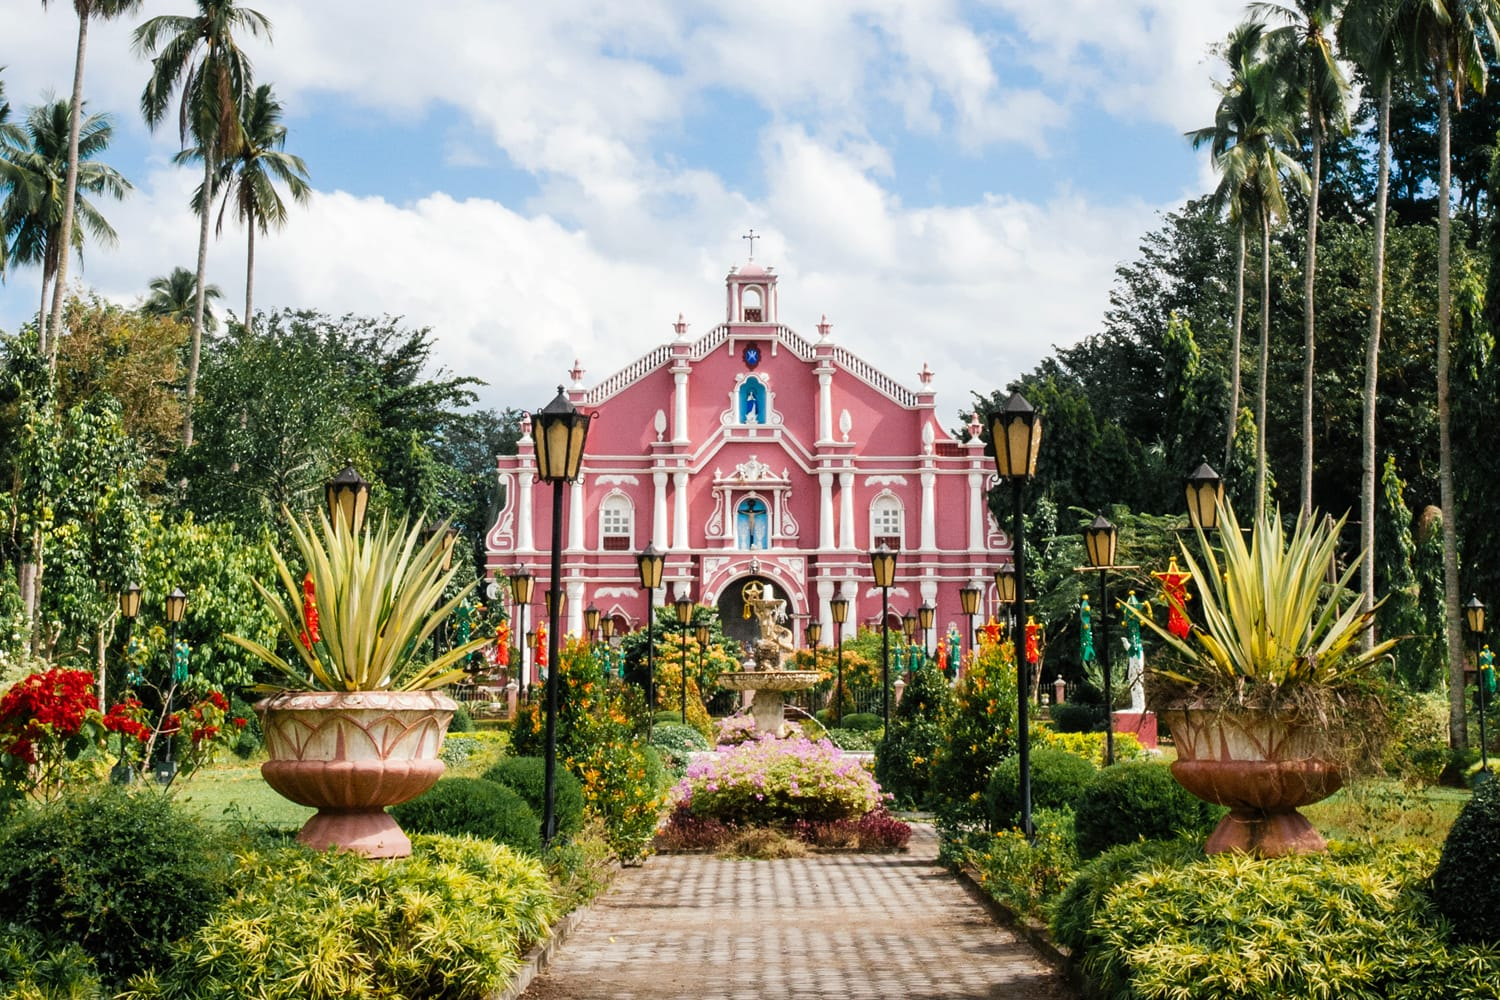 Old Museum building in Villa Escudero, Philippines